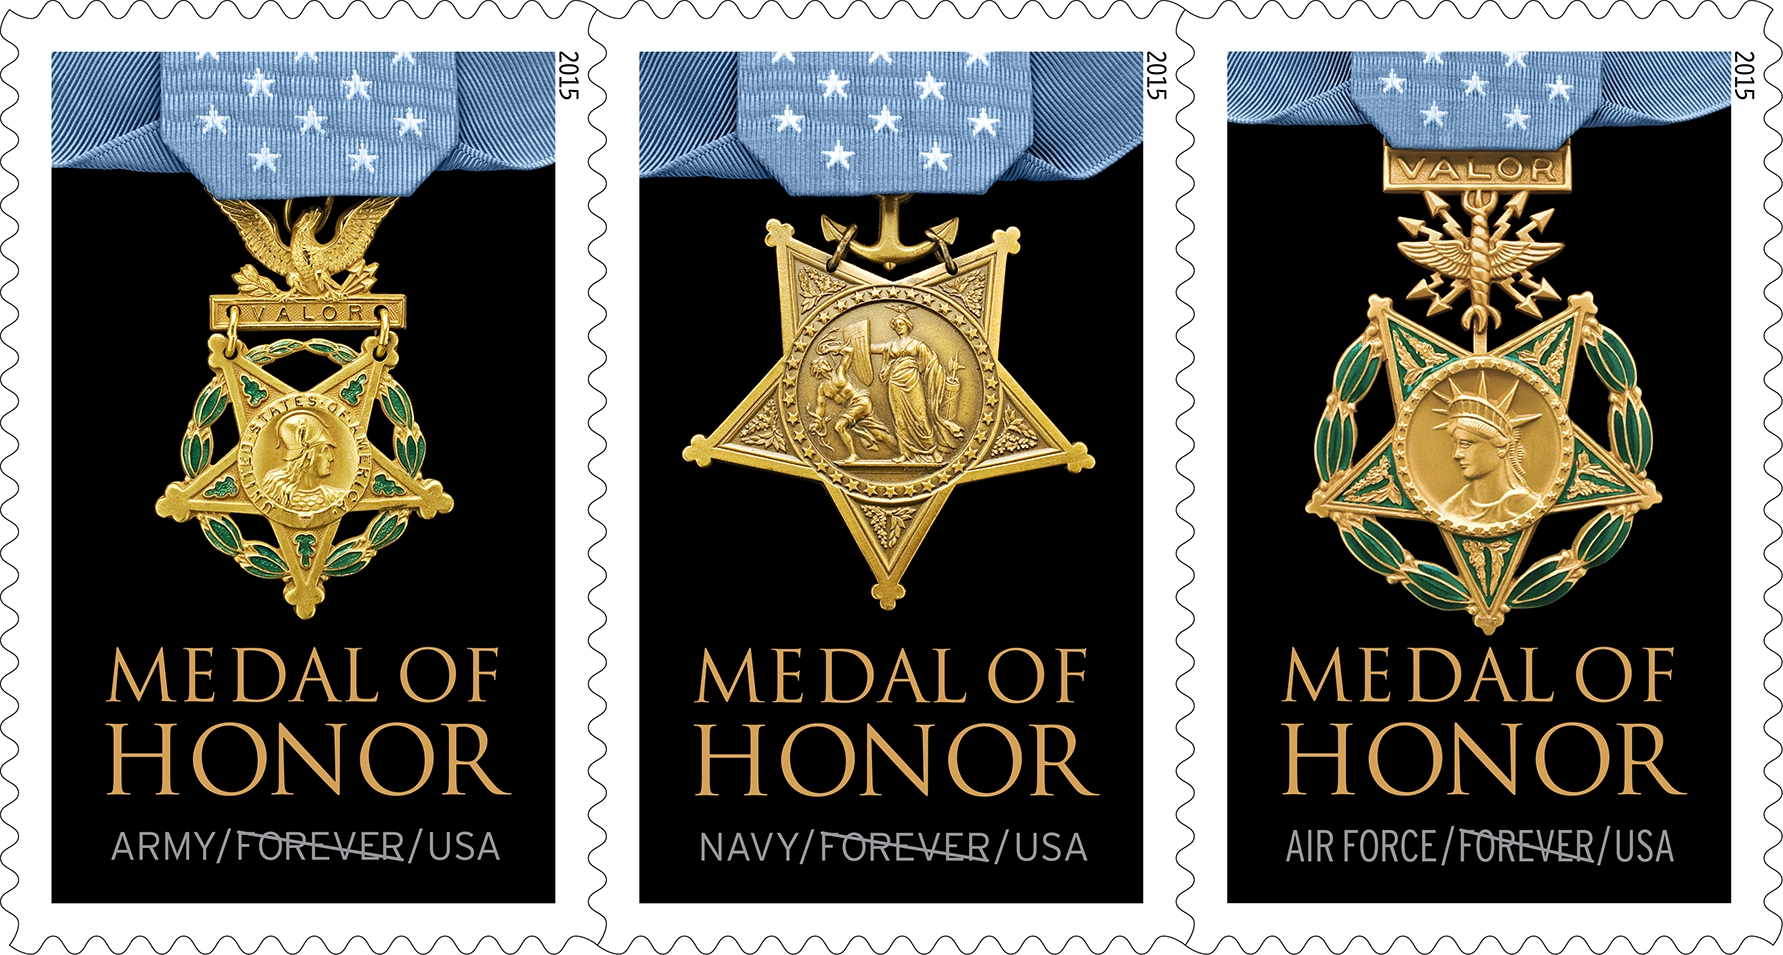 USPS New Issues 2015 Stamp News Now